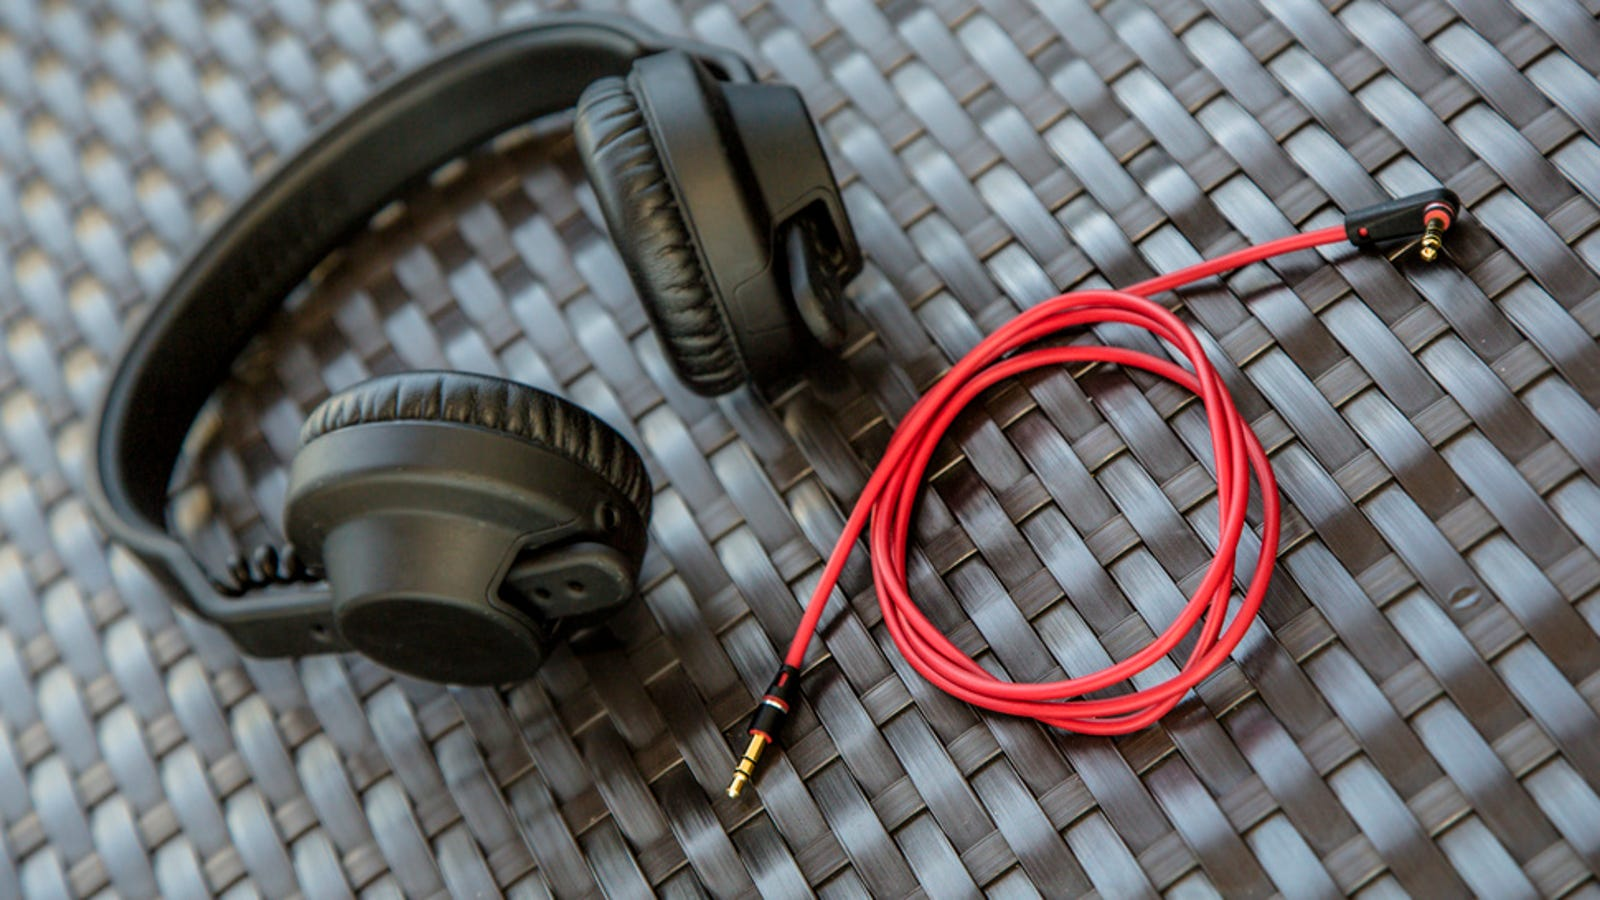 uiisii cm5 earbuds - Getting a Shorter Headphone Cable Will Change Your Life